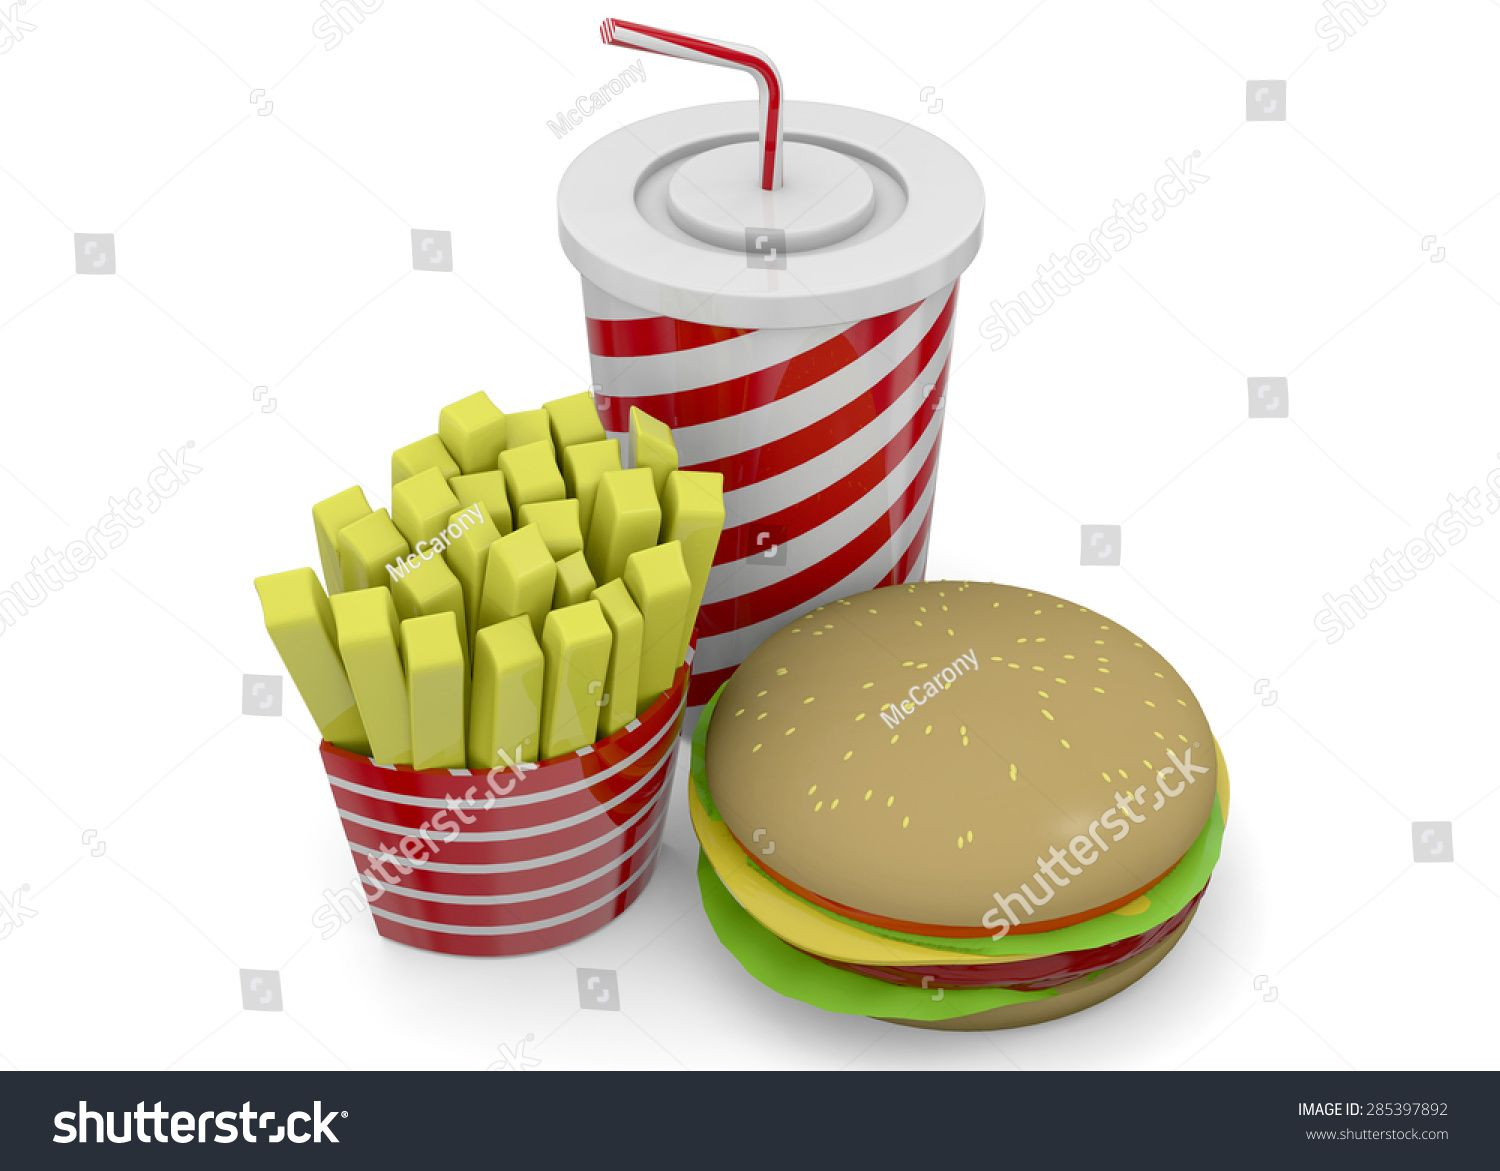 Sandwich Chips And Drink Fast Food Ad Paid Chips Sandwich Drink Food In 2020 Fast Food Food Chips